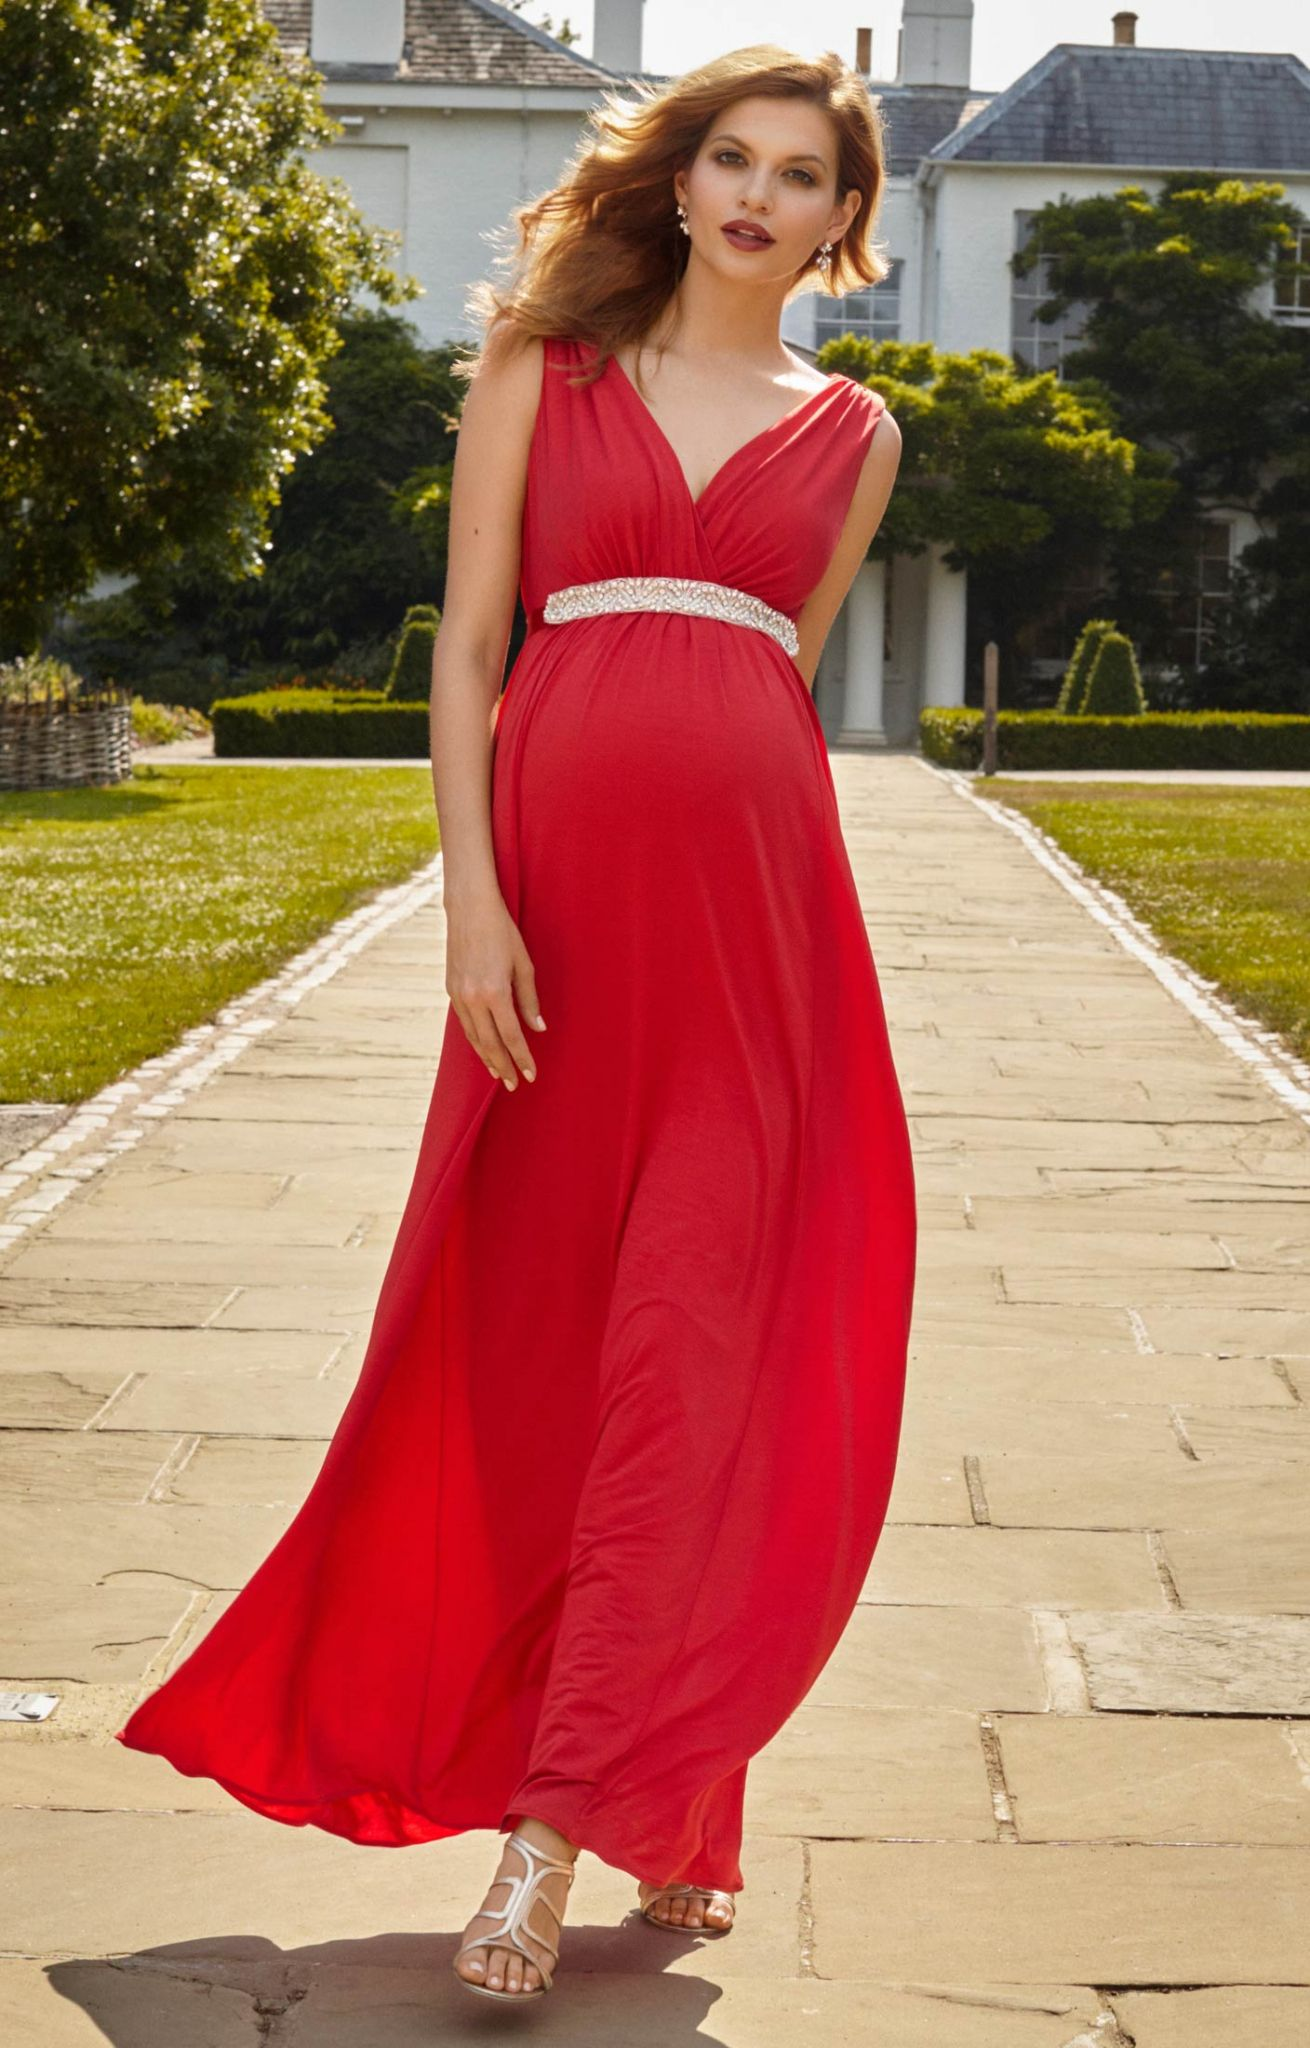 Red Maternity Wedding Dresses - Wedding Dresses for Fall Check more ...